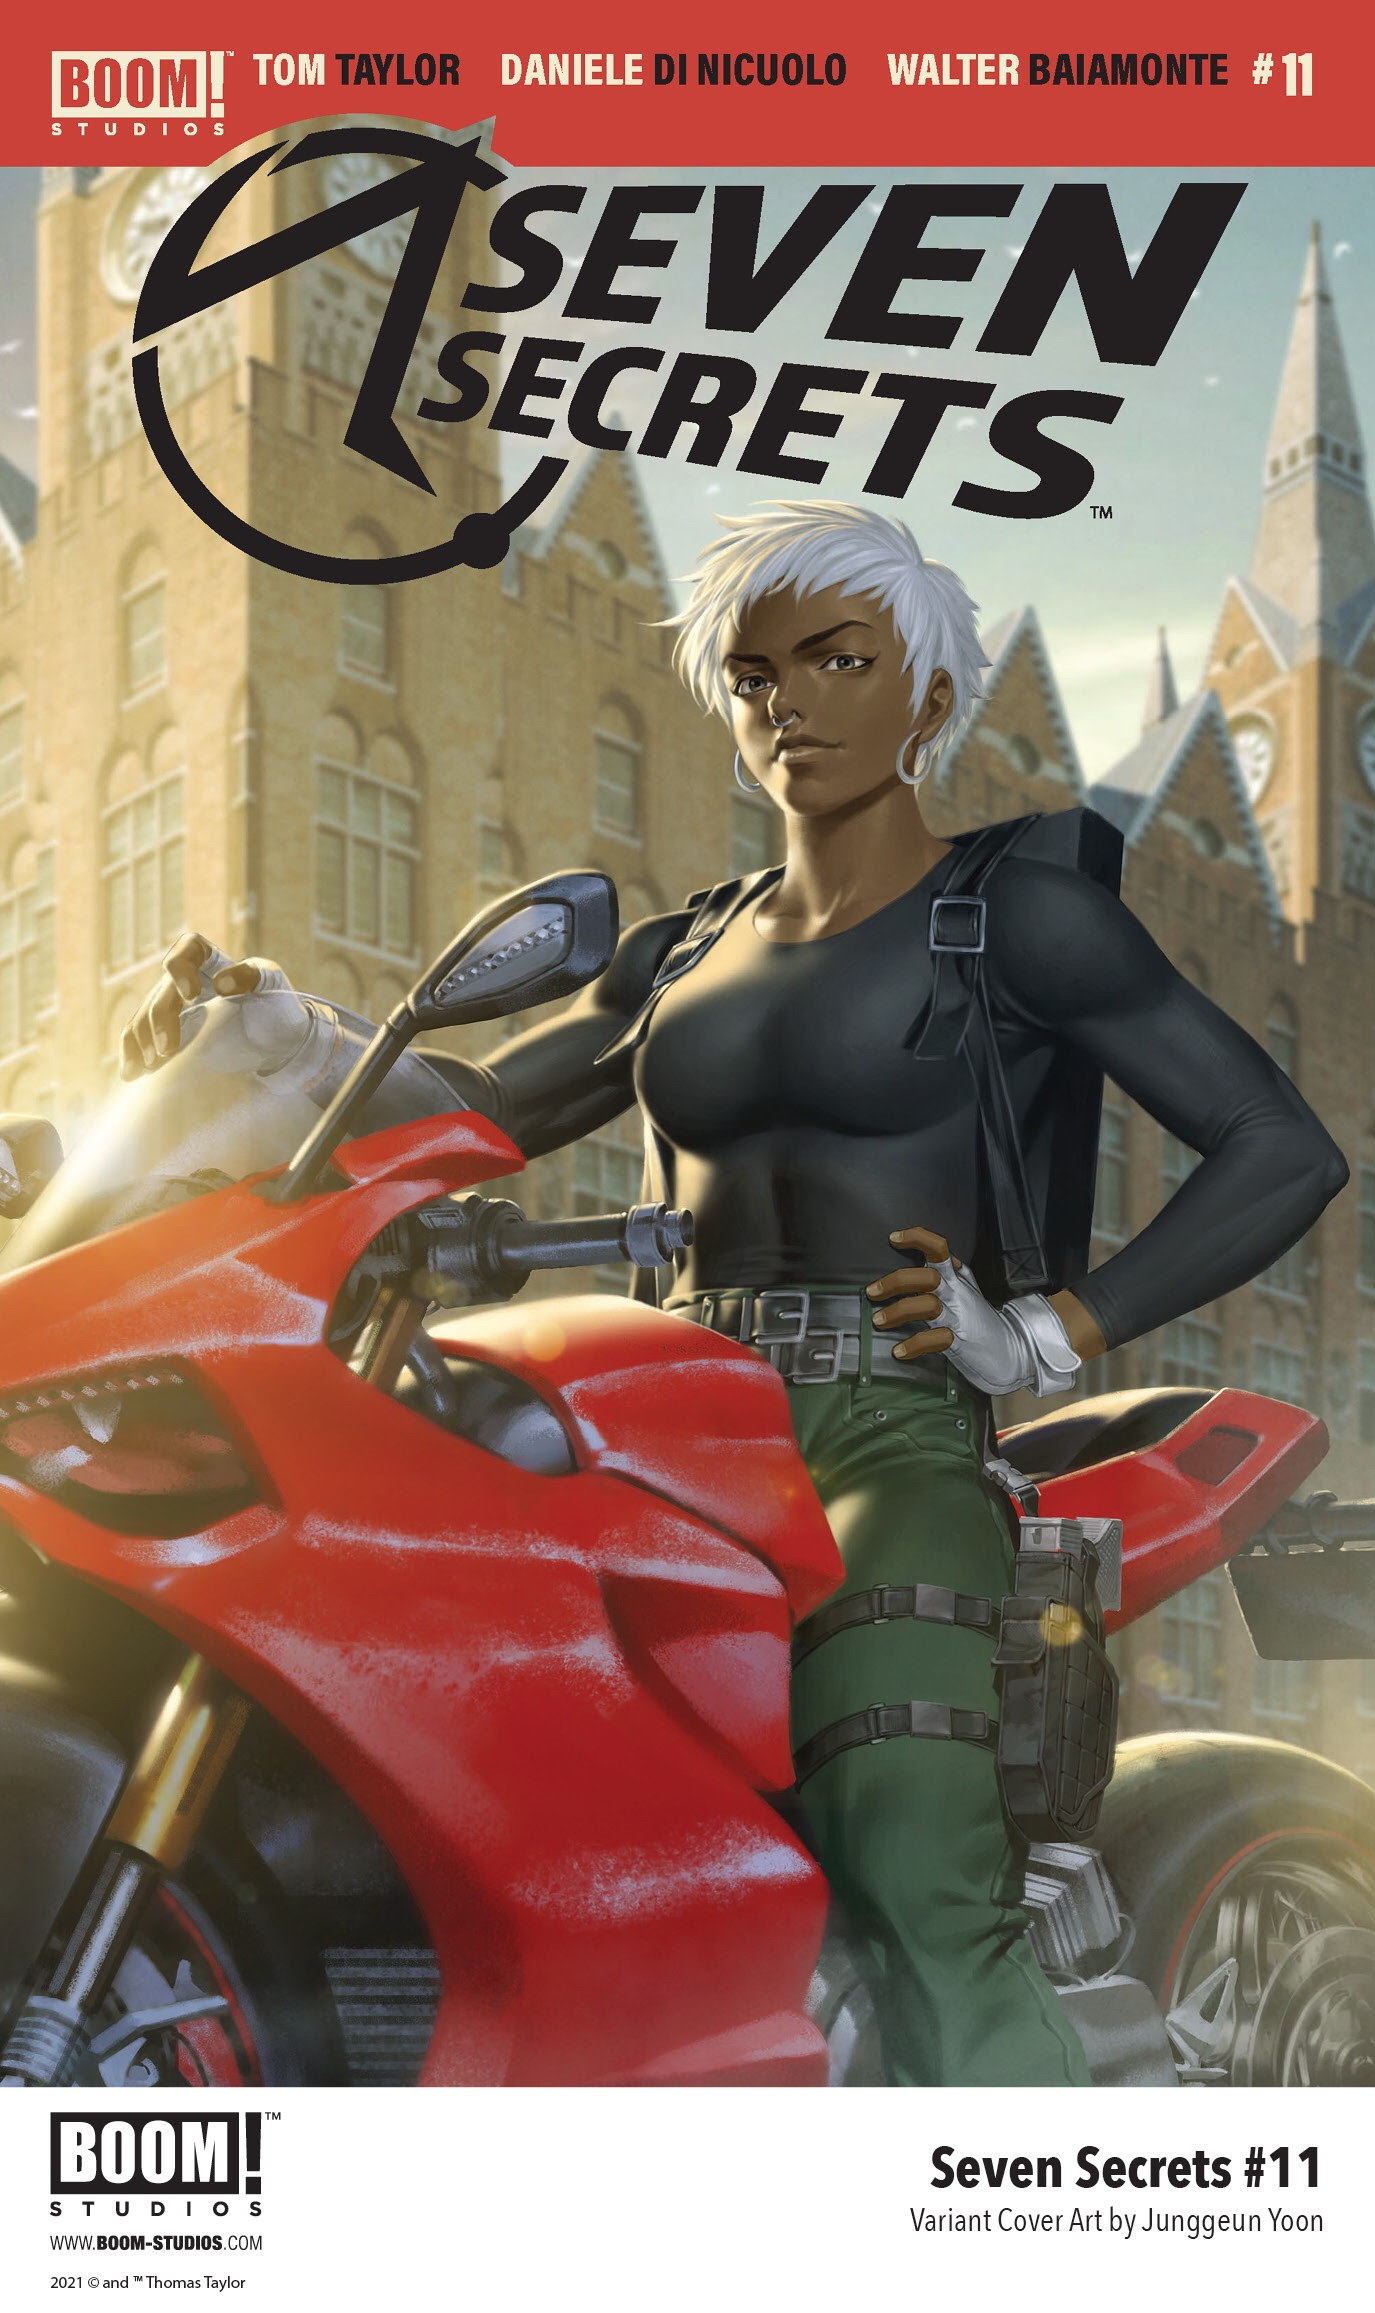 Indie comic news, Eva's Dangerous Discovery Changes Everything in SEVEN SECRETS #11, The Indie Comix Dispatch